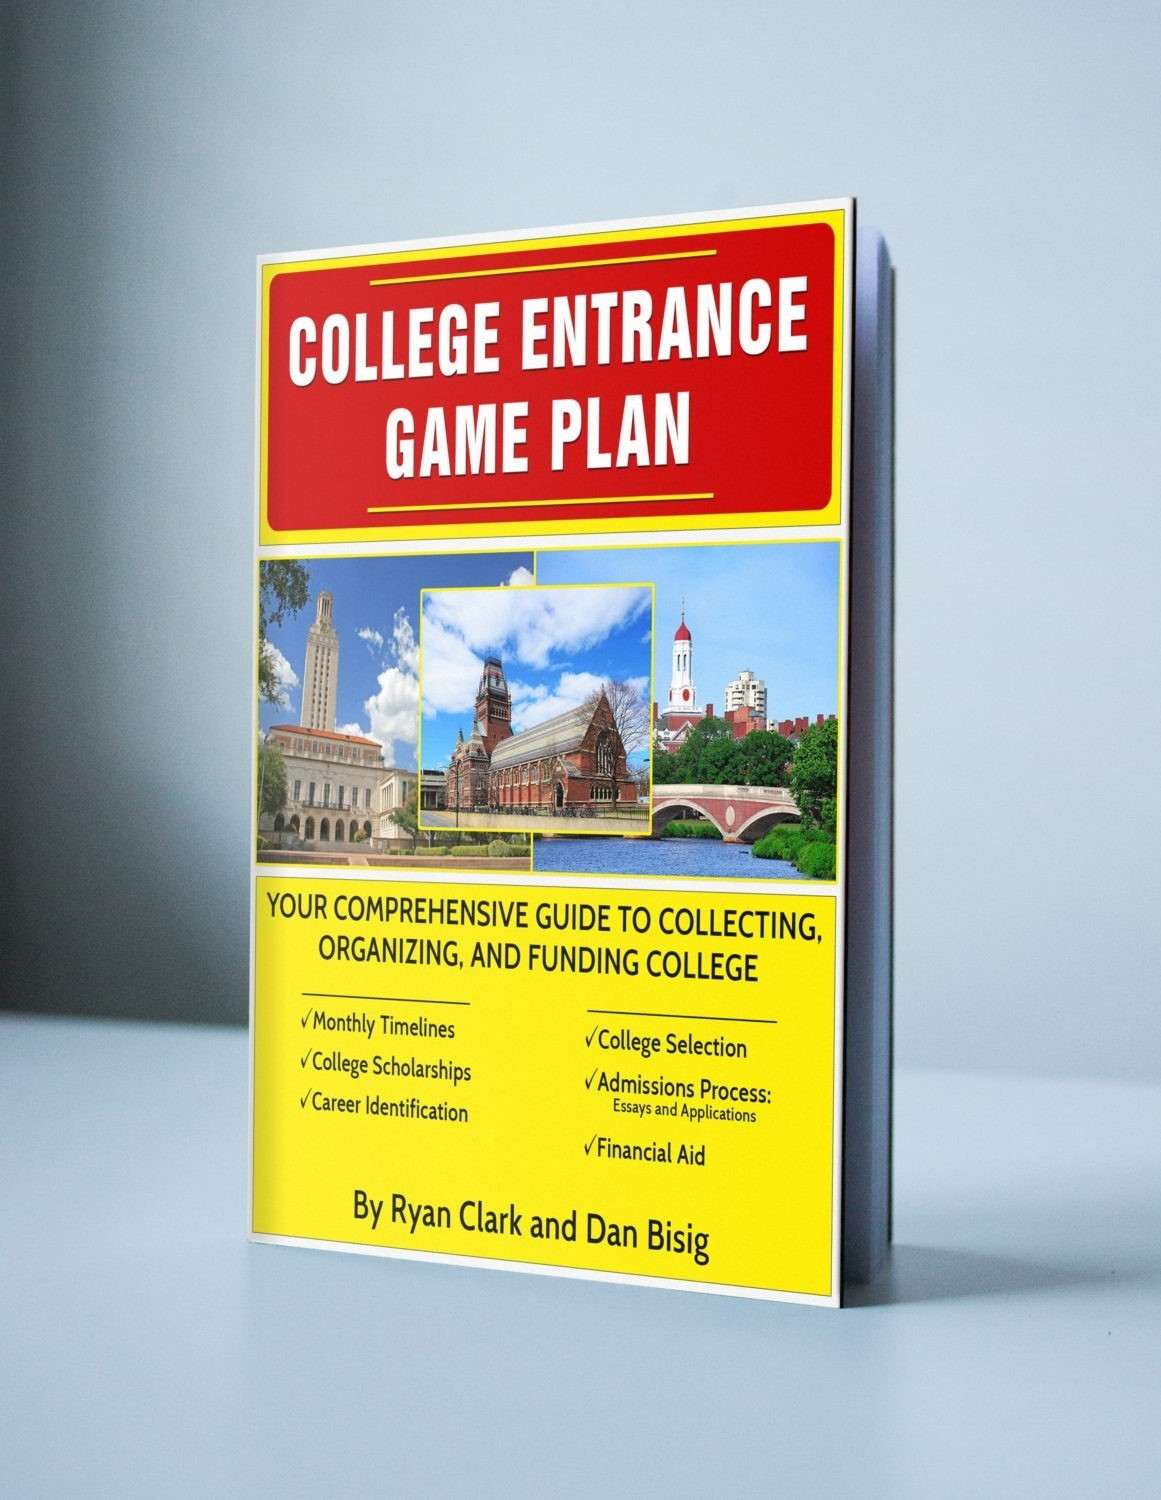 College Entrance Game Plan